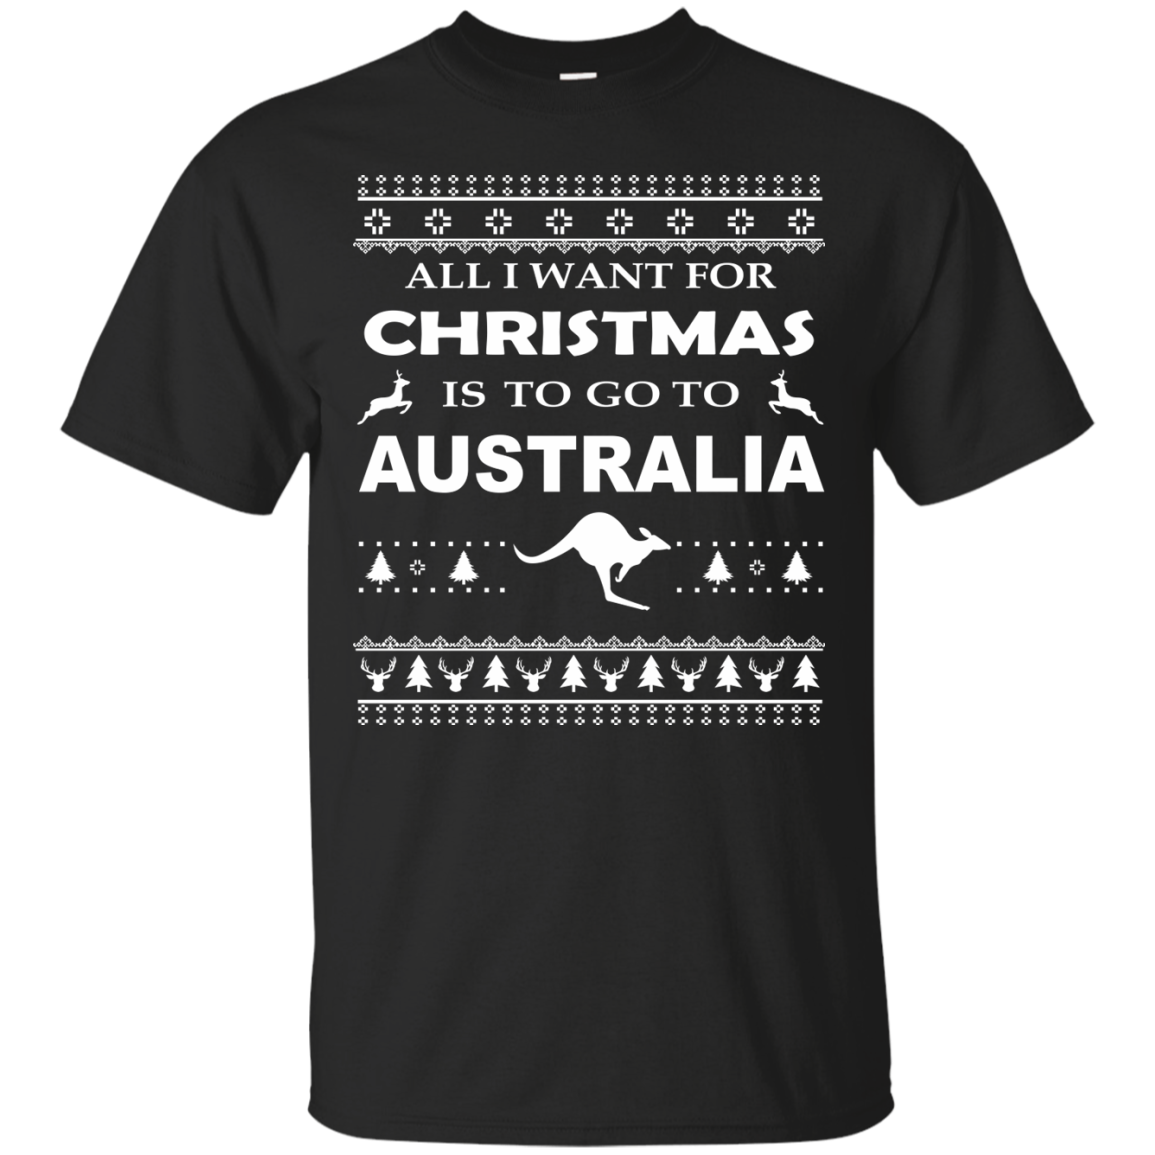 Australia T-Shirts Hoodies Want Christmas Go To Australia